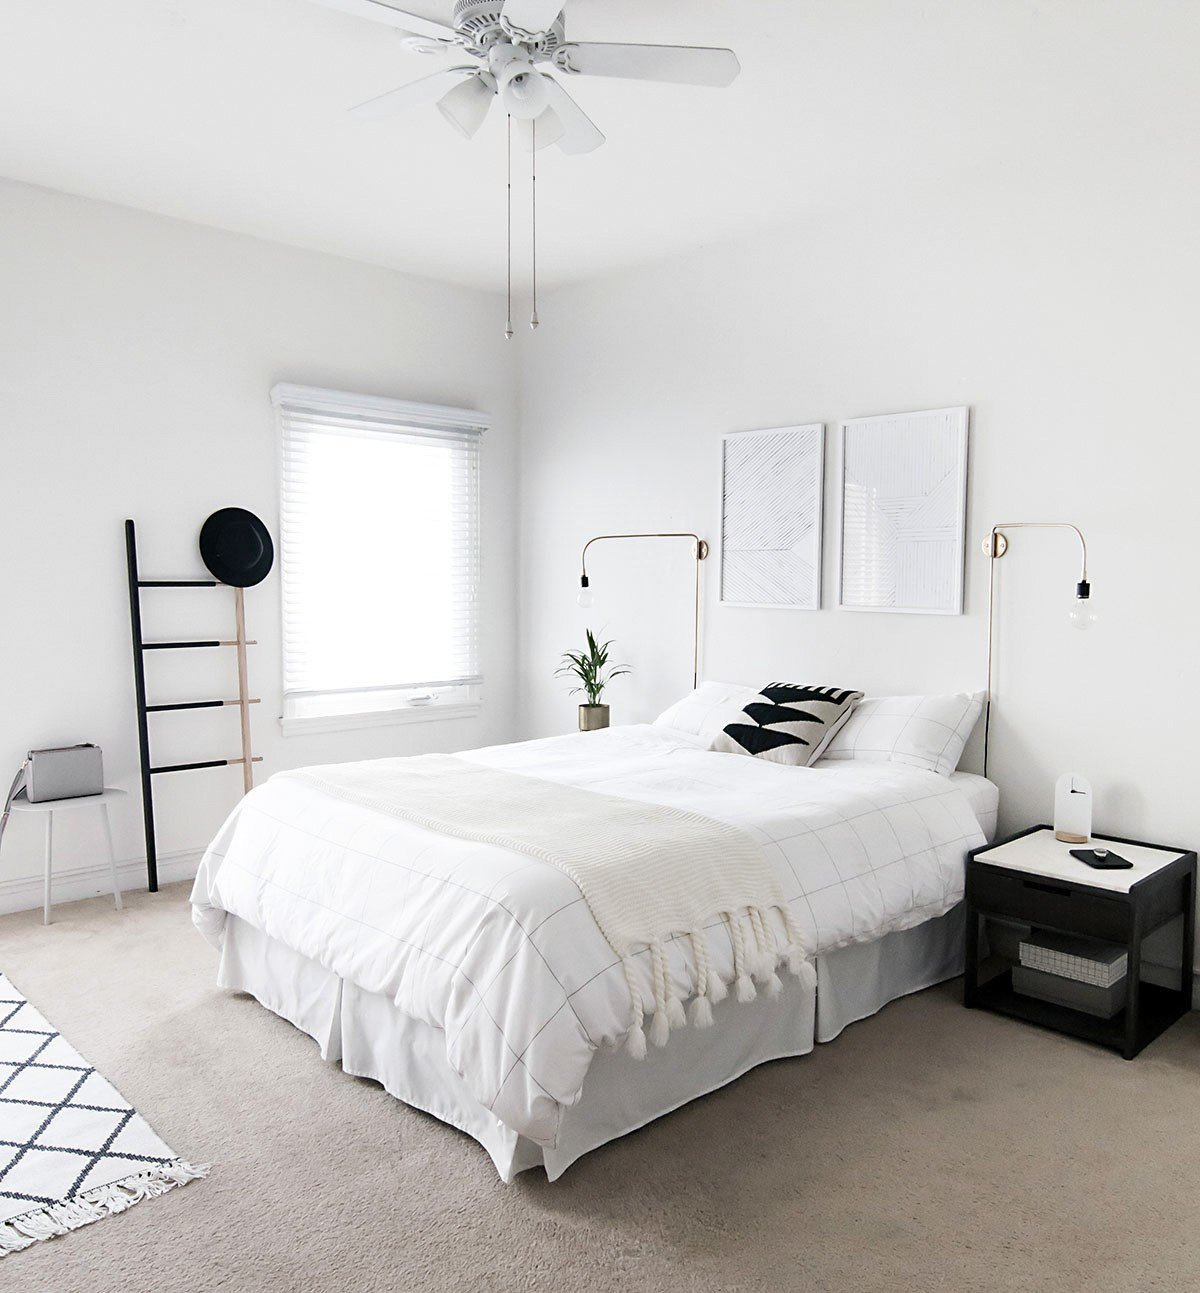 Best How To Achieve A Minimal Scandinavian Bedroom H*M*Y Oh My With Pictures